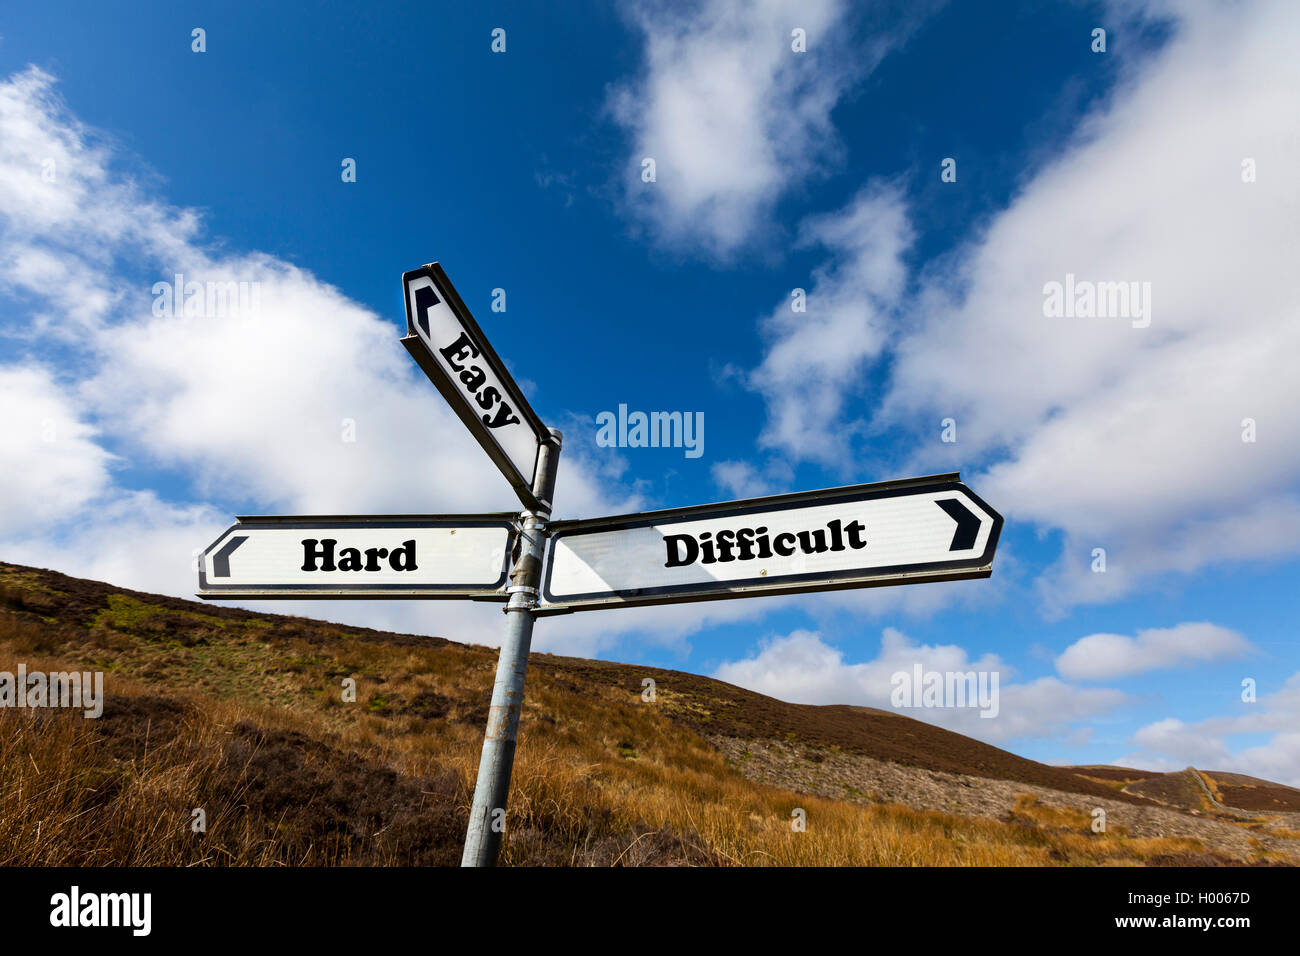 Facile Difficile difficile concept road sign choix choisissez options option future directions direction de la vie Photo Stock